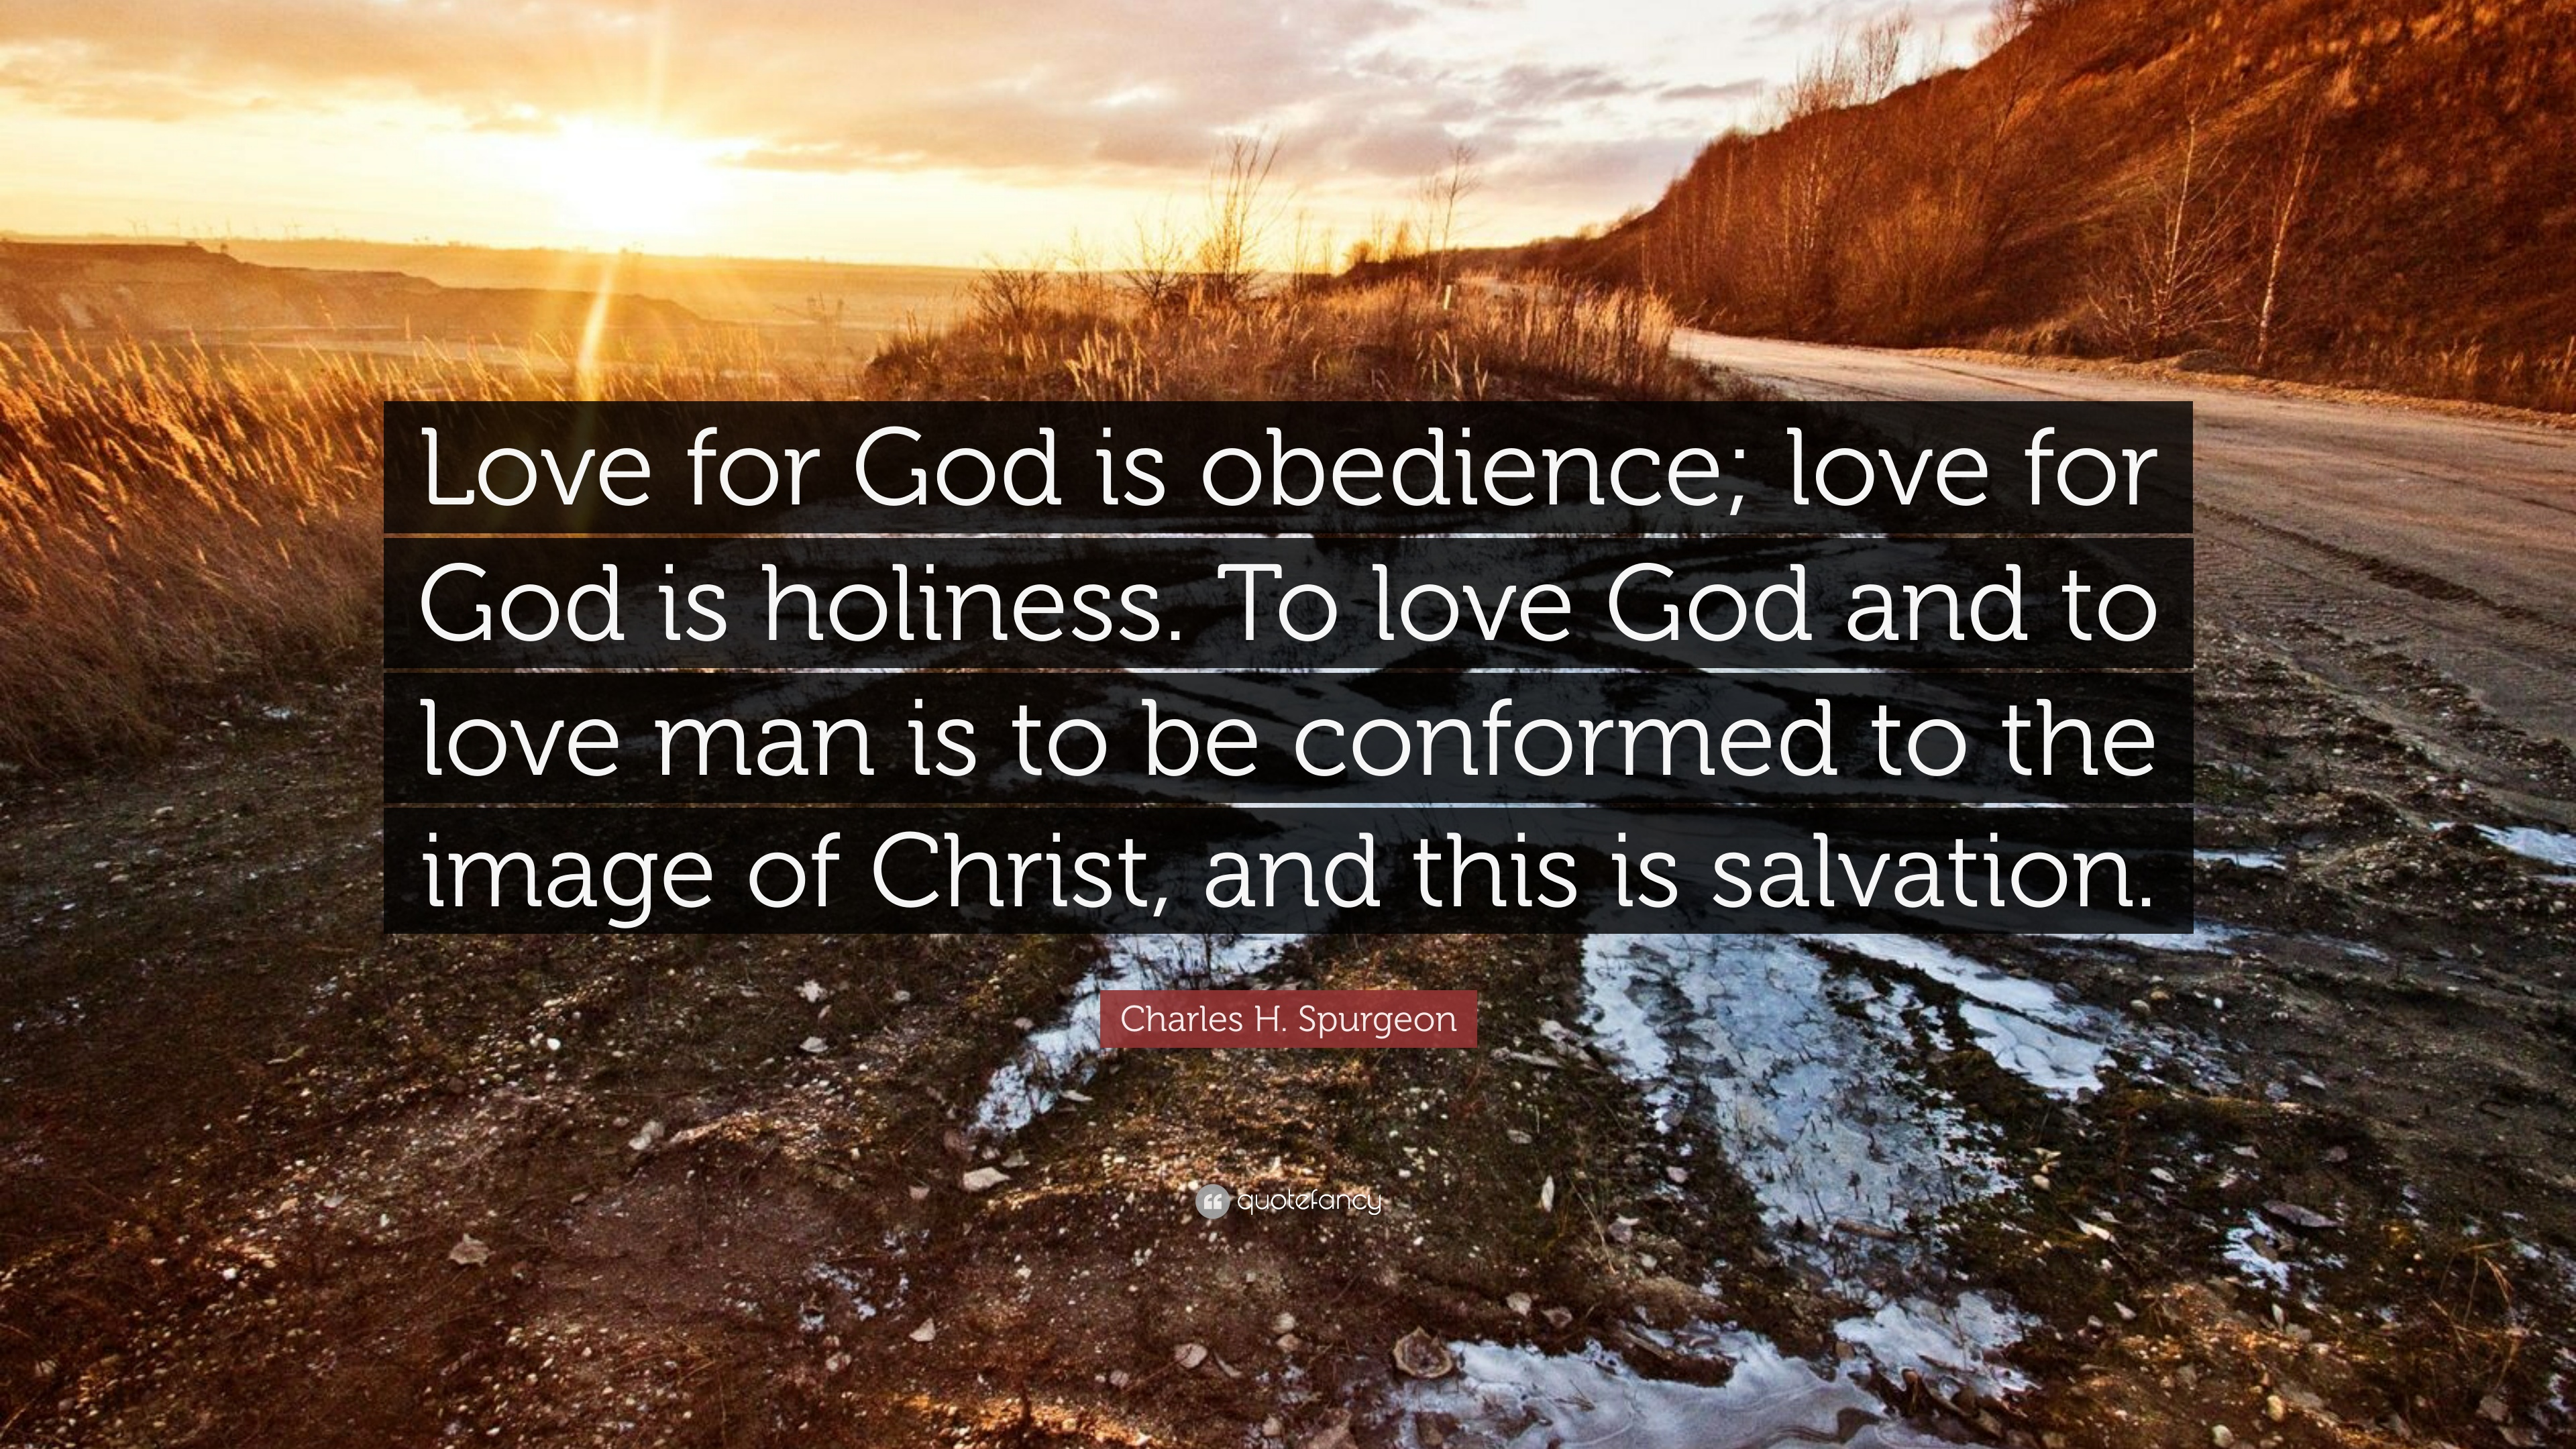 """Charles H Spurgeon Quote """"Love for God is obe nce love for God"""